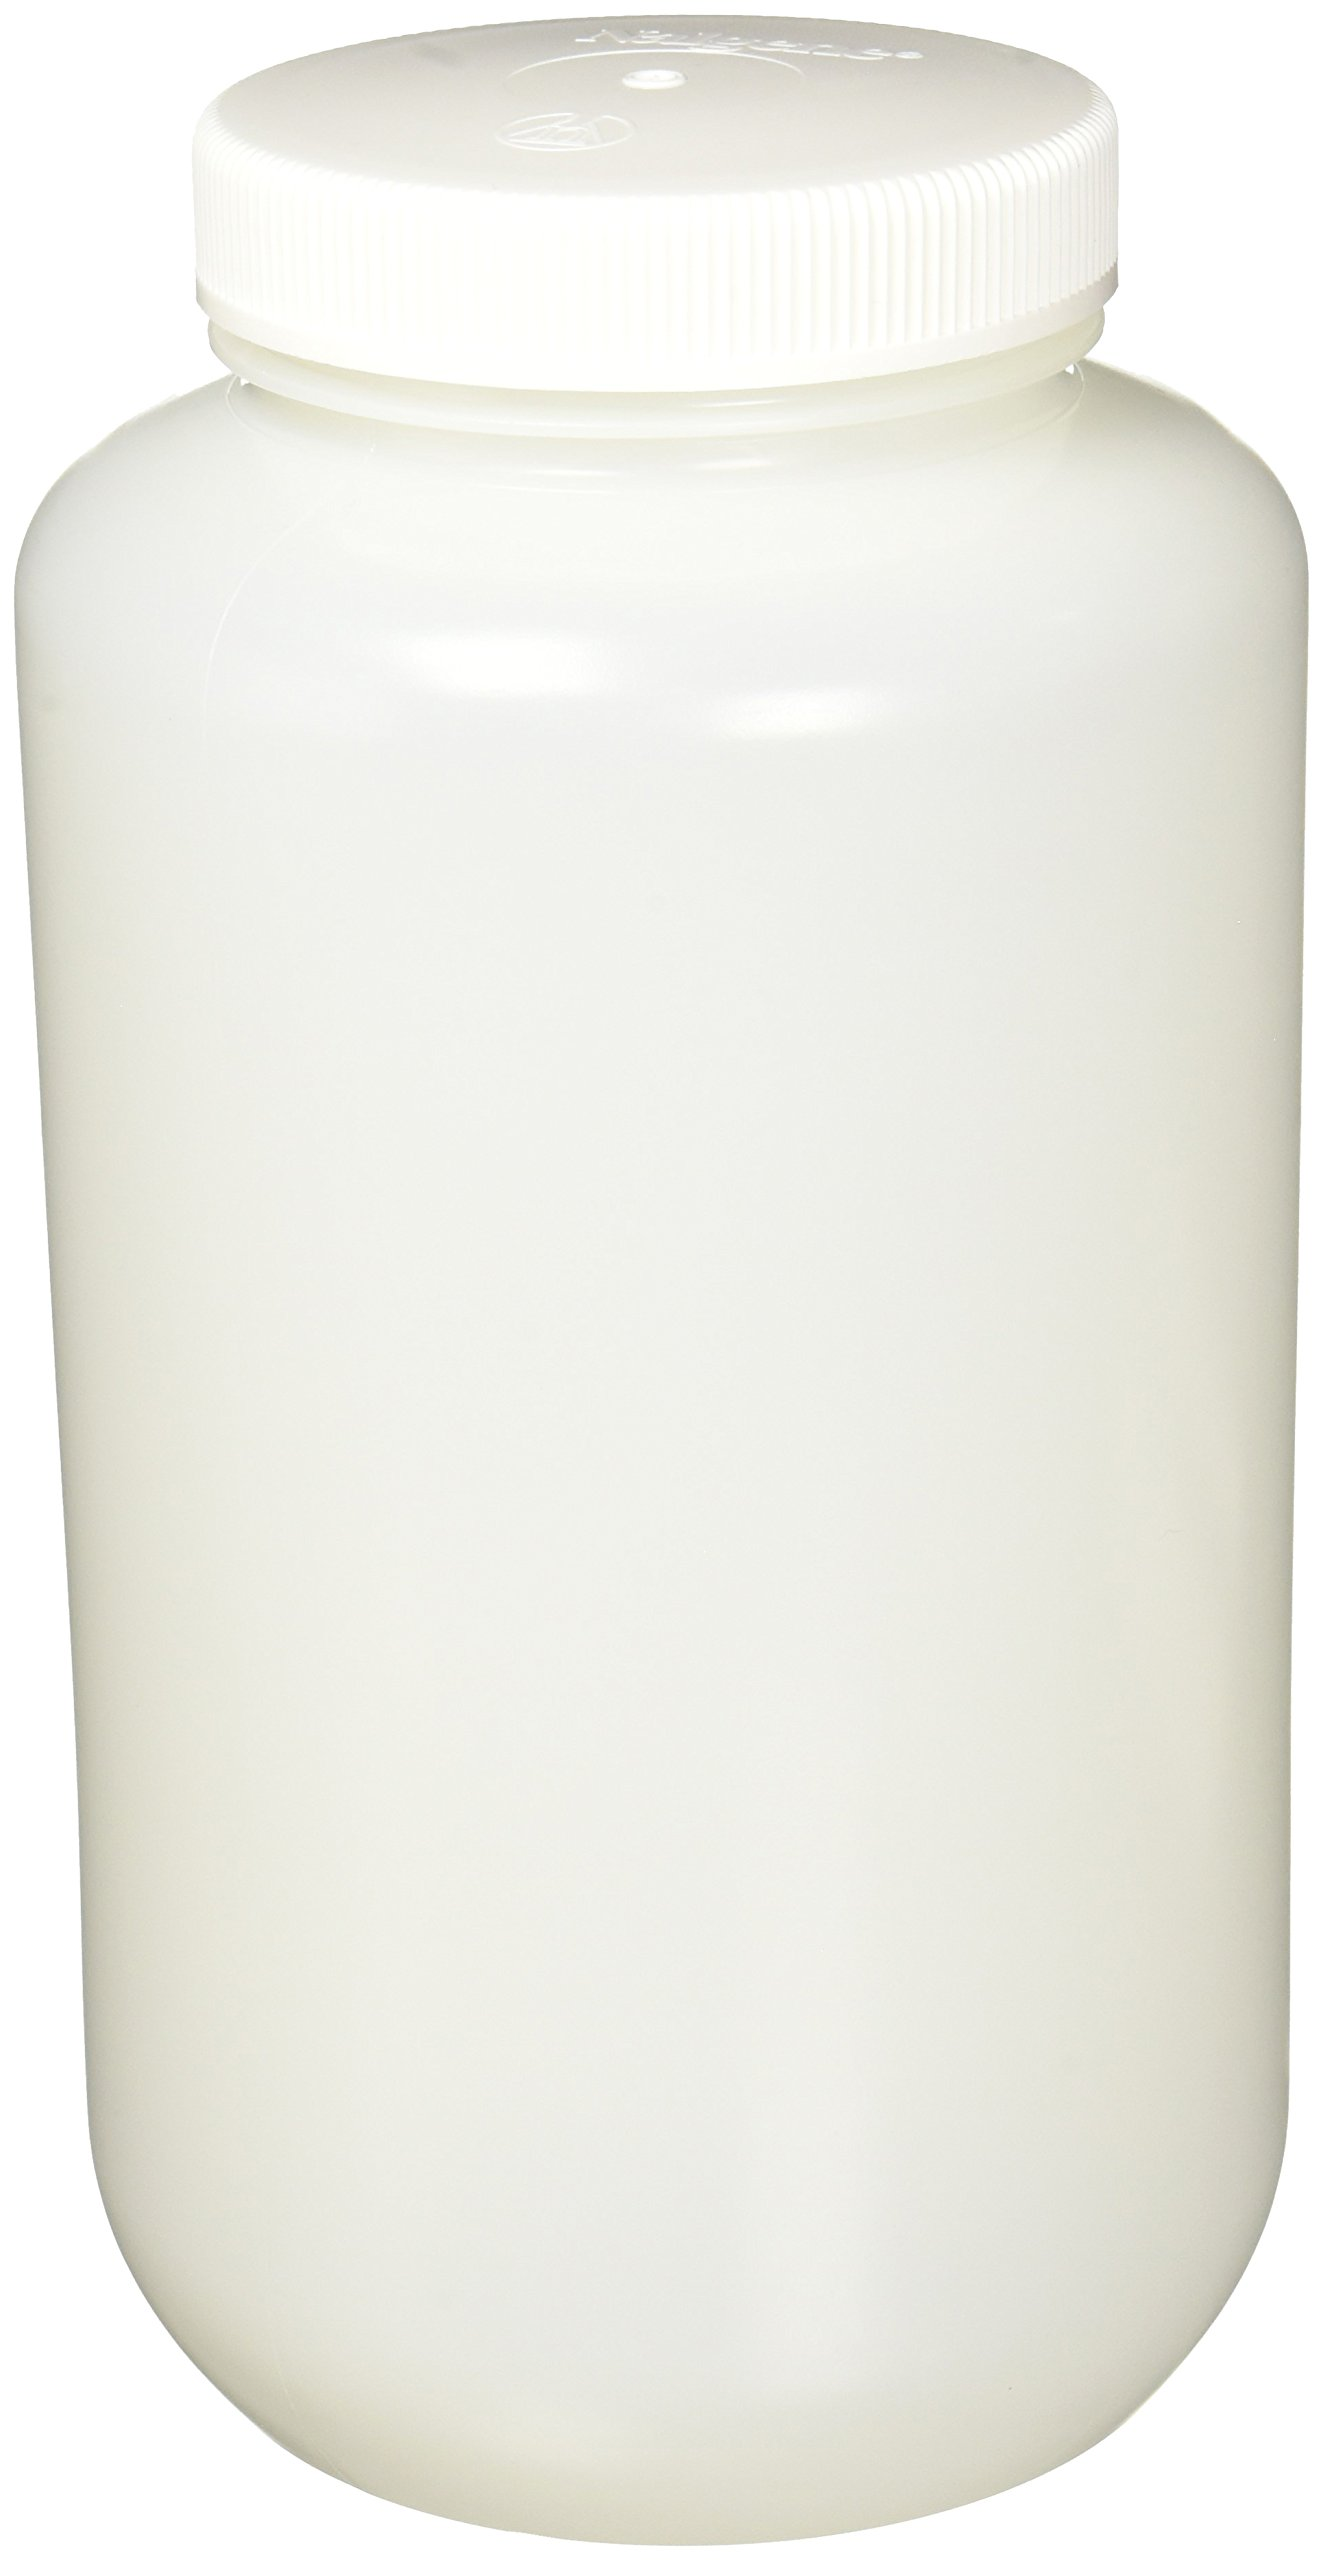 Nalgene HDPE Wide Mouth Round Container, 128 Oz